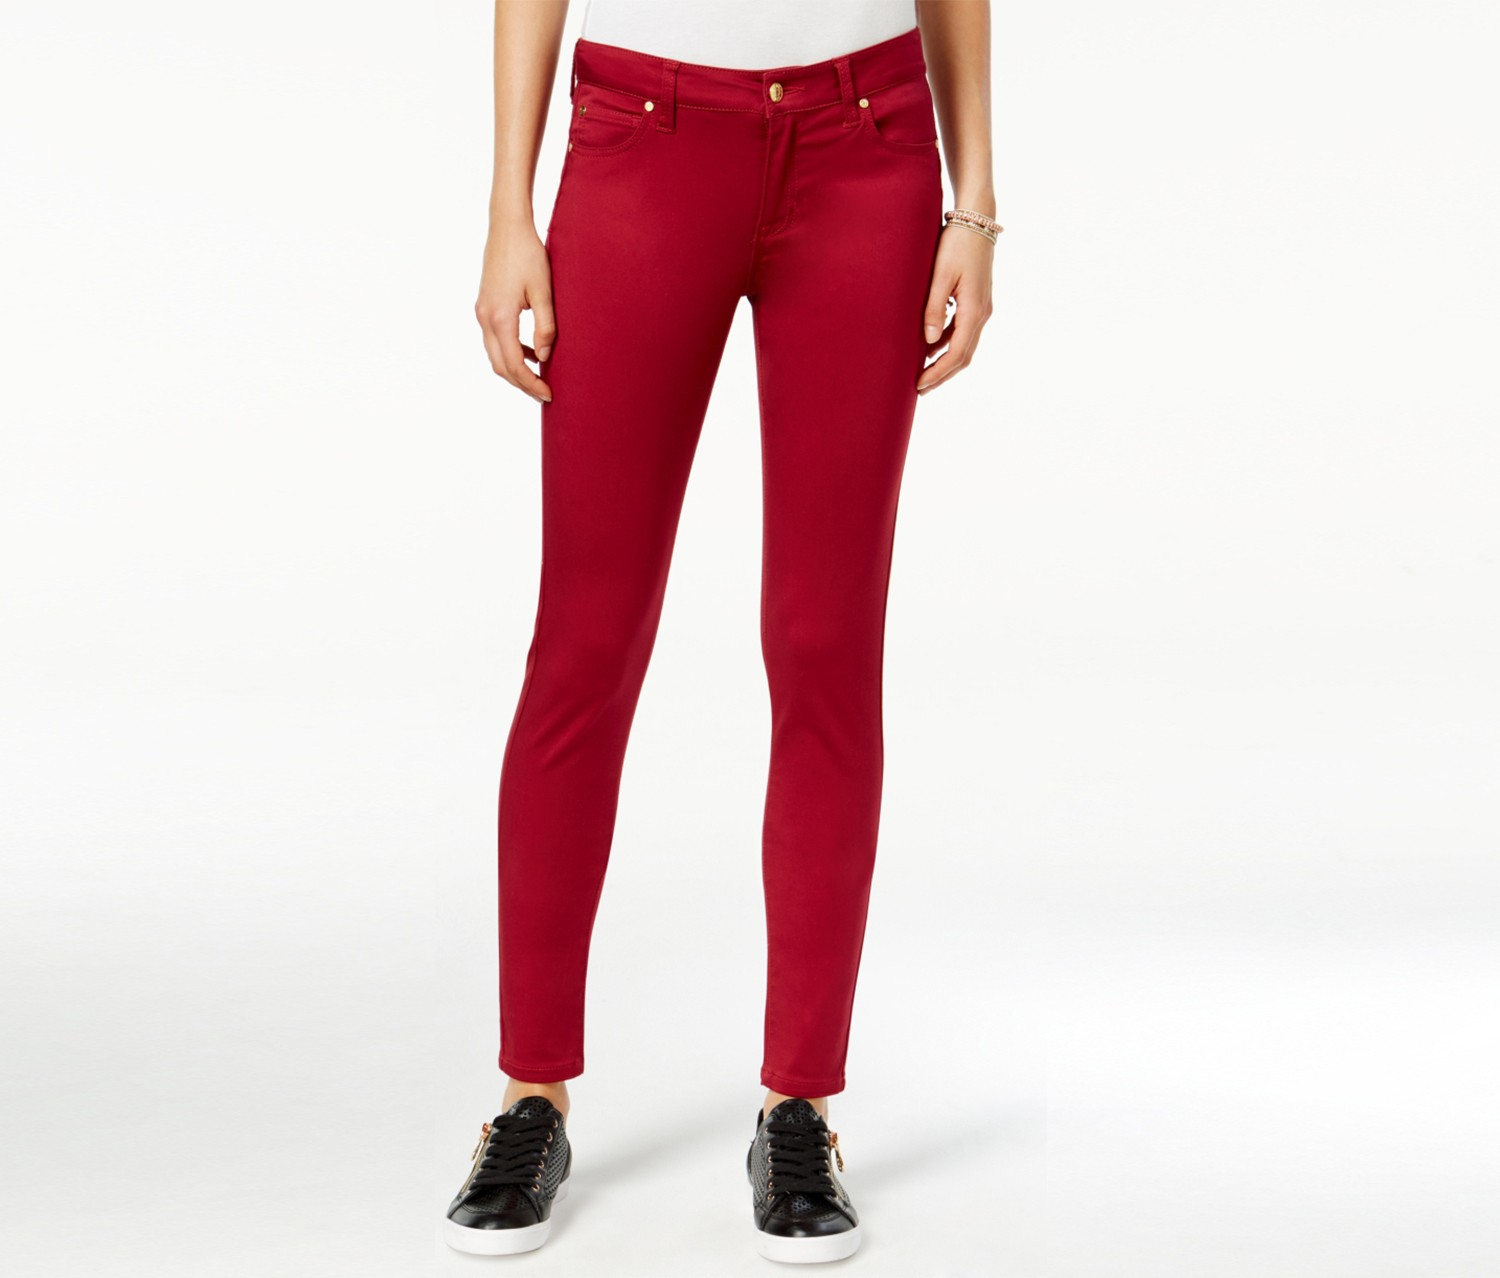 Celebrity Pink Women's Skinny Jeans, Red